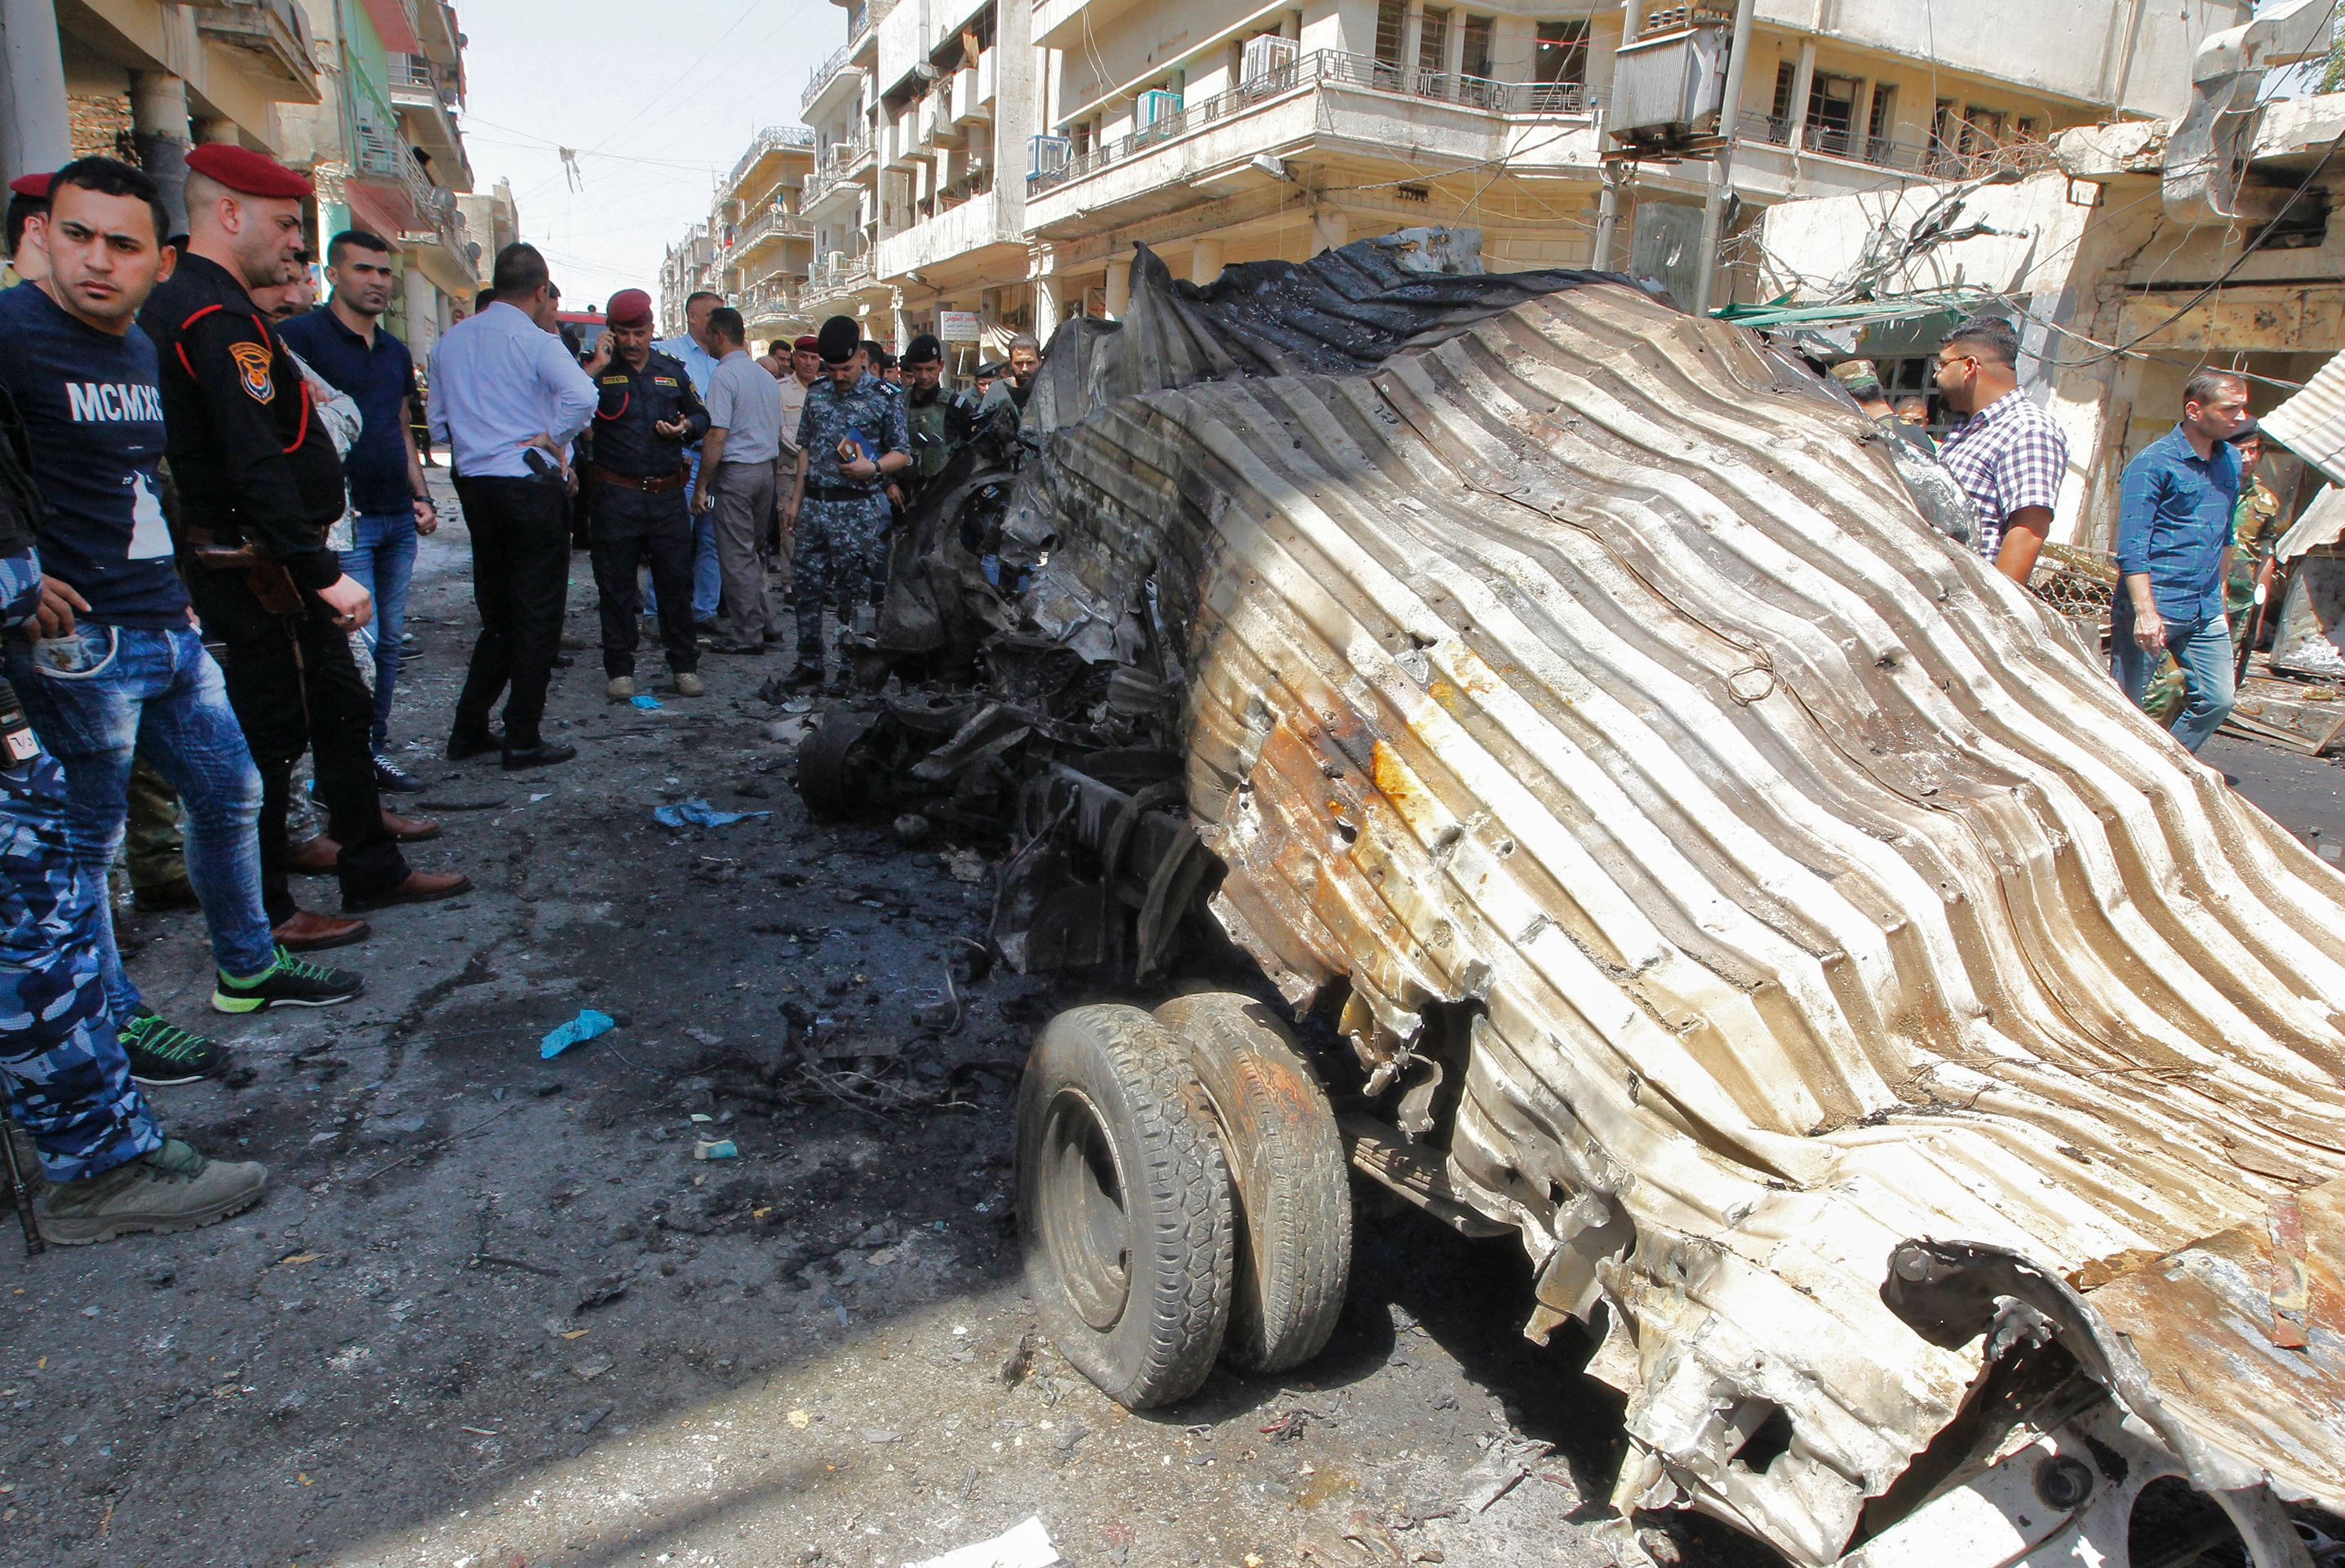 EDITORS NOTE: Graphic content / Iraqis gather at the site of a car bomb explosion near Baghdad's  Al-Shuhada Bridge on May 30, 2017 which killed at least five people and wounded 17, security and medical officials said.